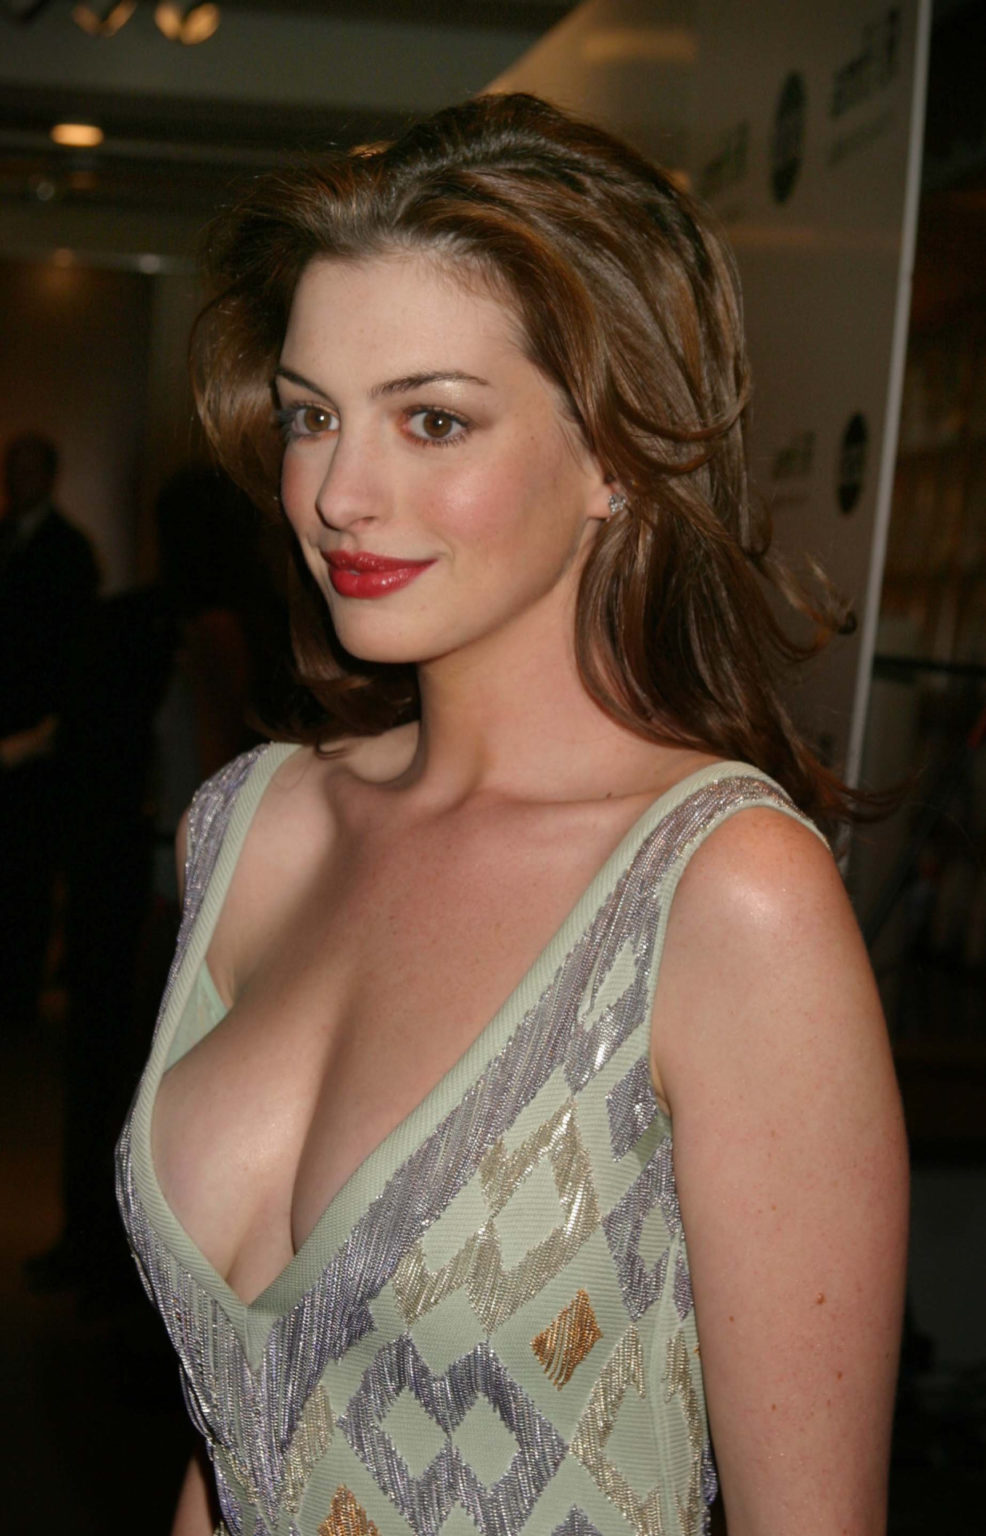 Fascinated by the image of the giant busty goddess Anne Hathaway who transforms into a princess: The beauty of a Hollywood treasure, a royal aura that is hard to match - Photo 13.